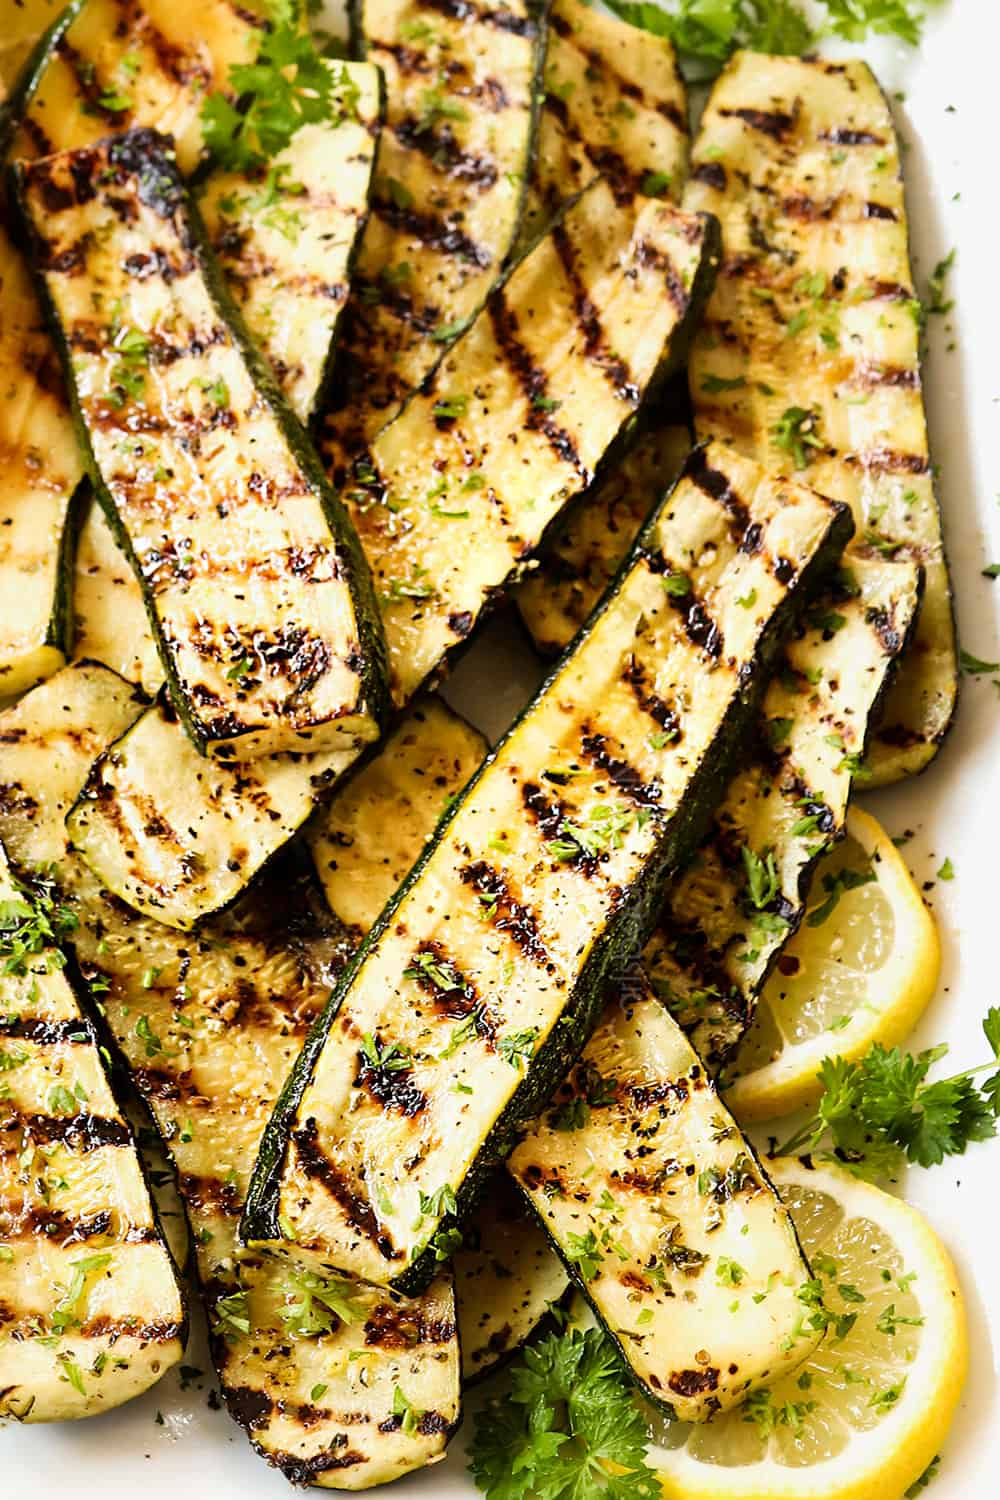 up close of grilled zucchini recipe showing distinct grill marks and how thick the zucchini is